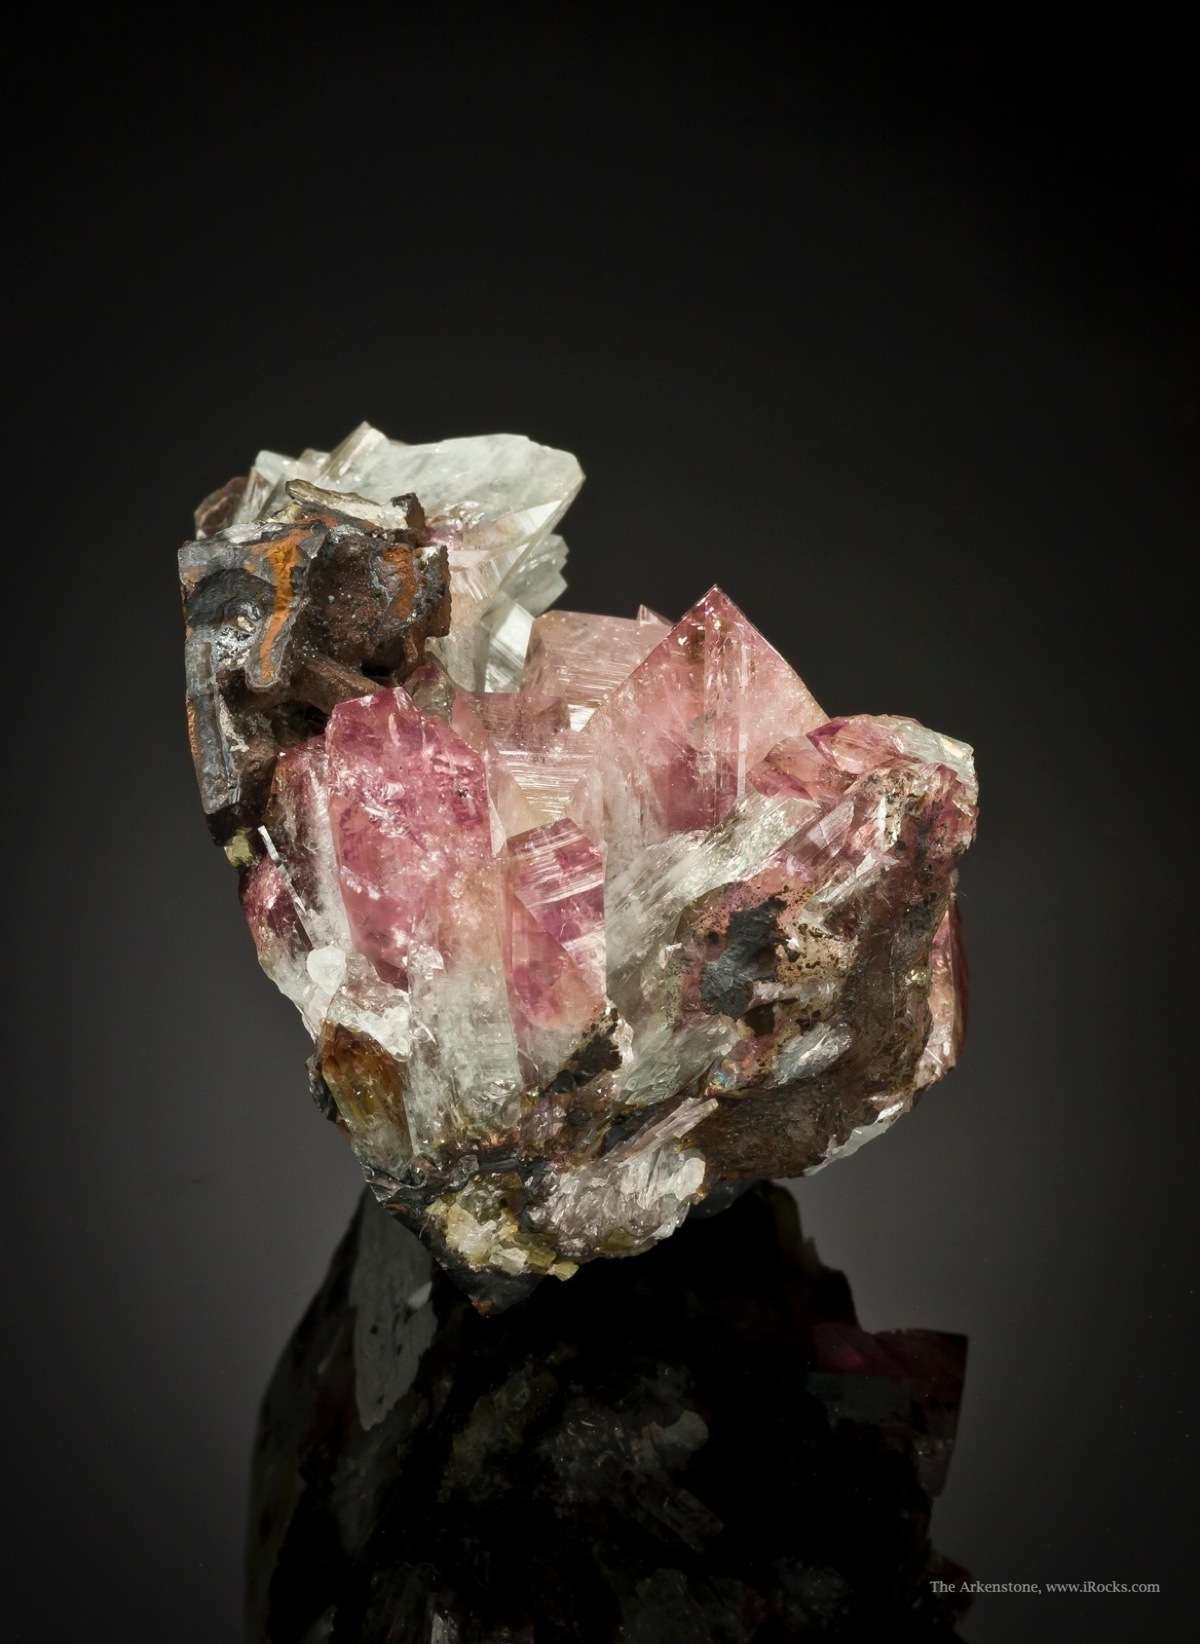 In 1980 wonderful manganoan adamite Mina Ojuela initially mislabelled